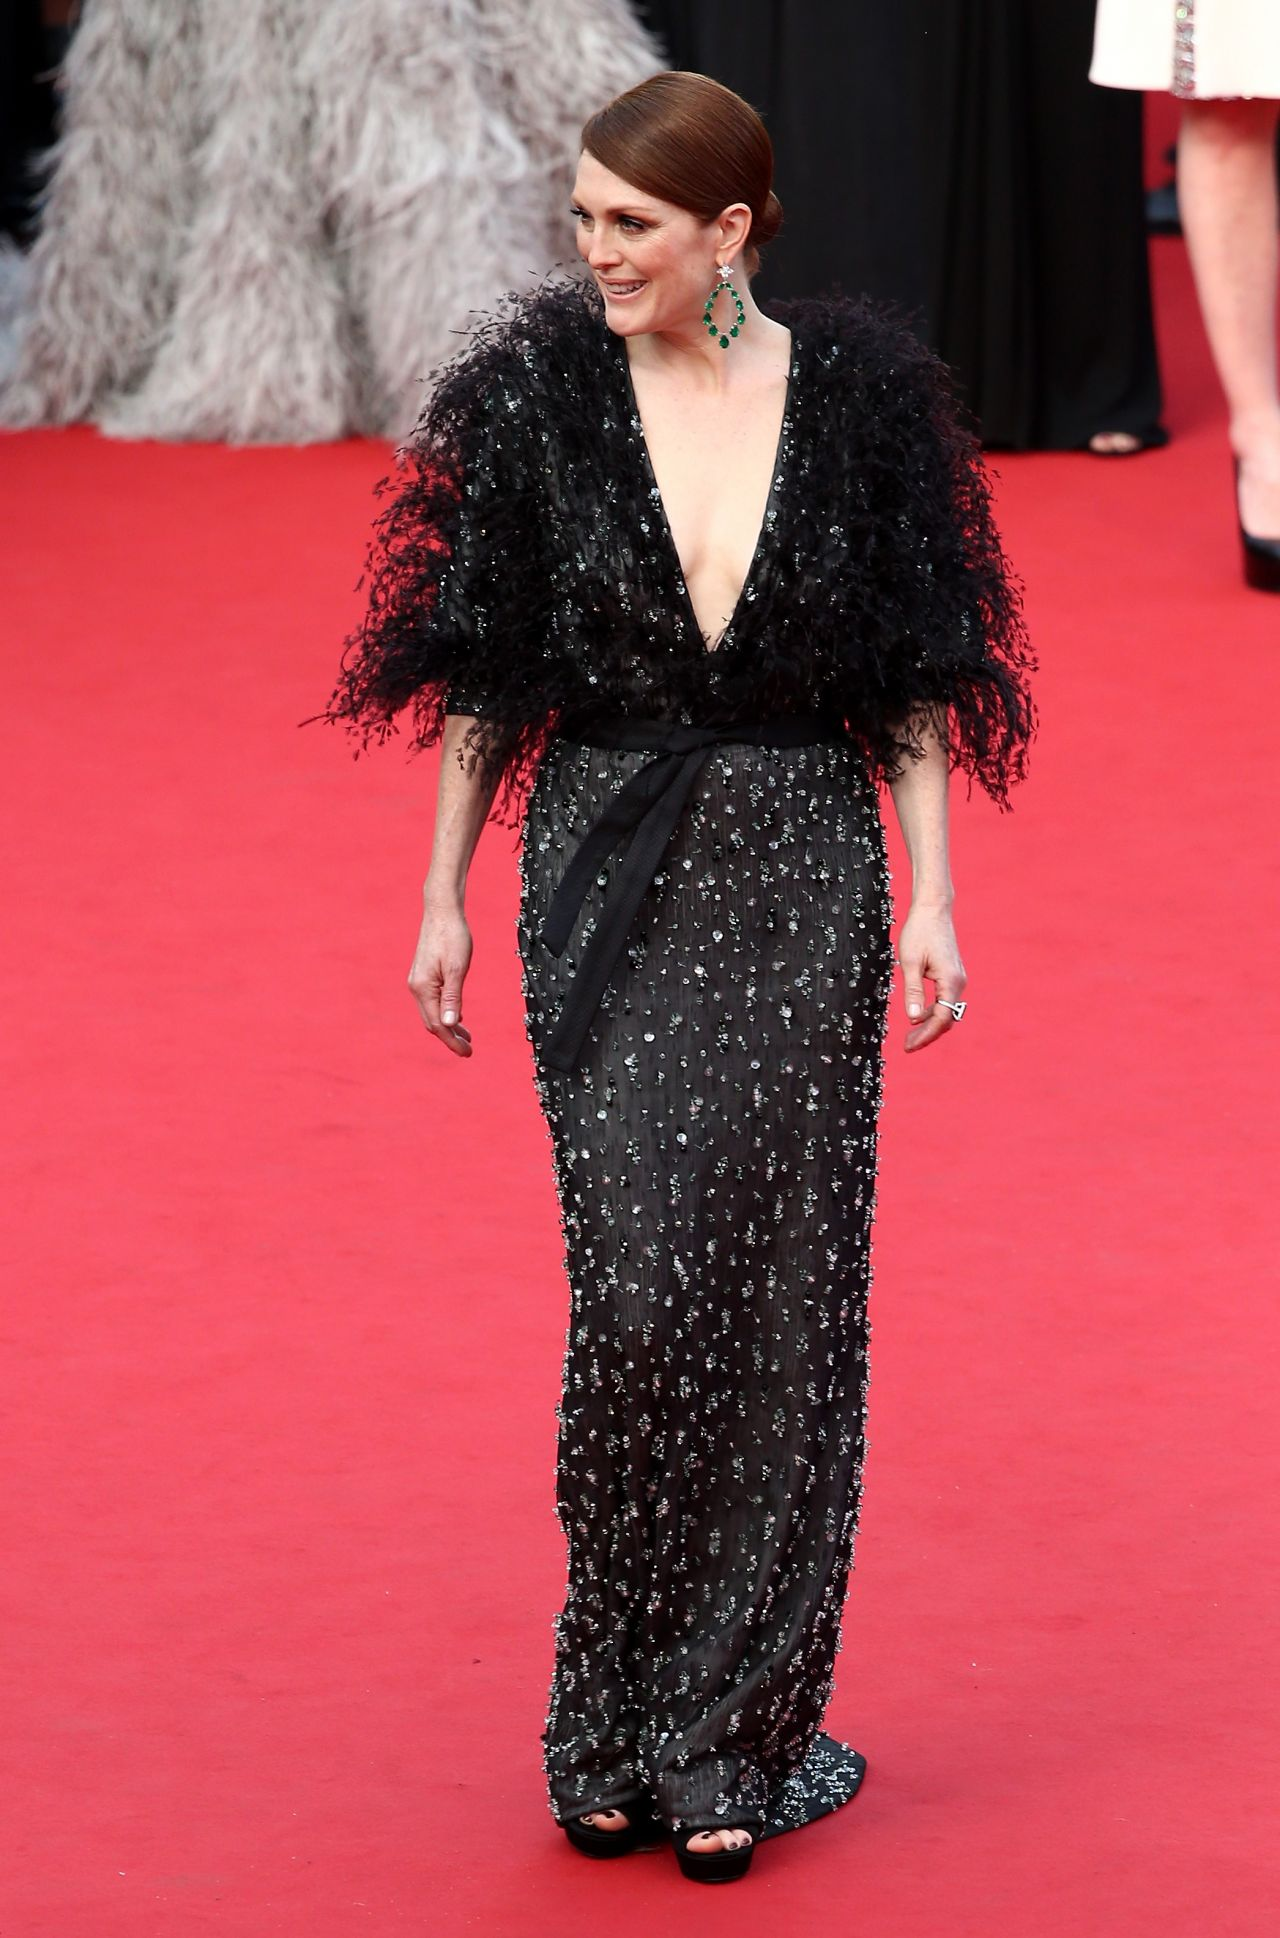 julianne-moore-in-armani-prive-at-the-standing-tall-68th-cannes-film-festival-premiere-opening-ceremony